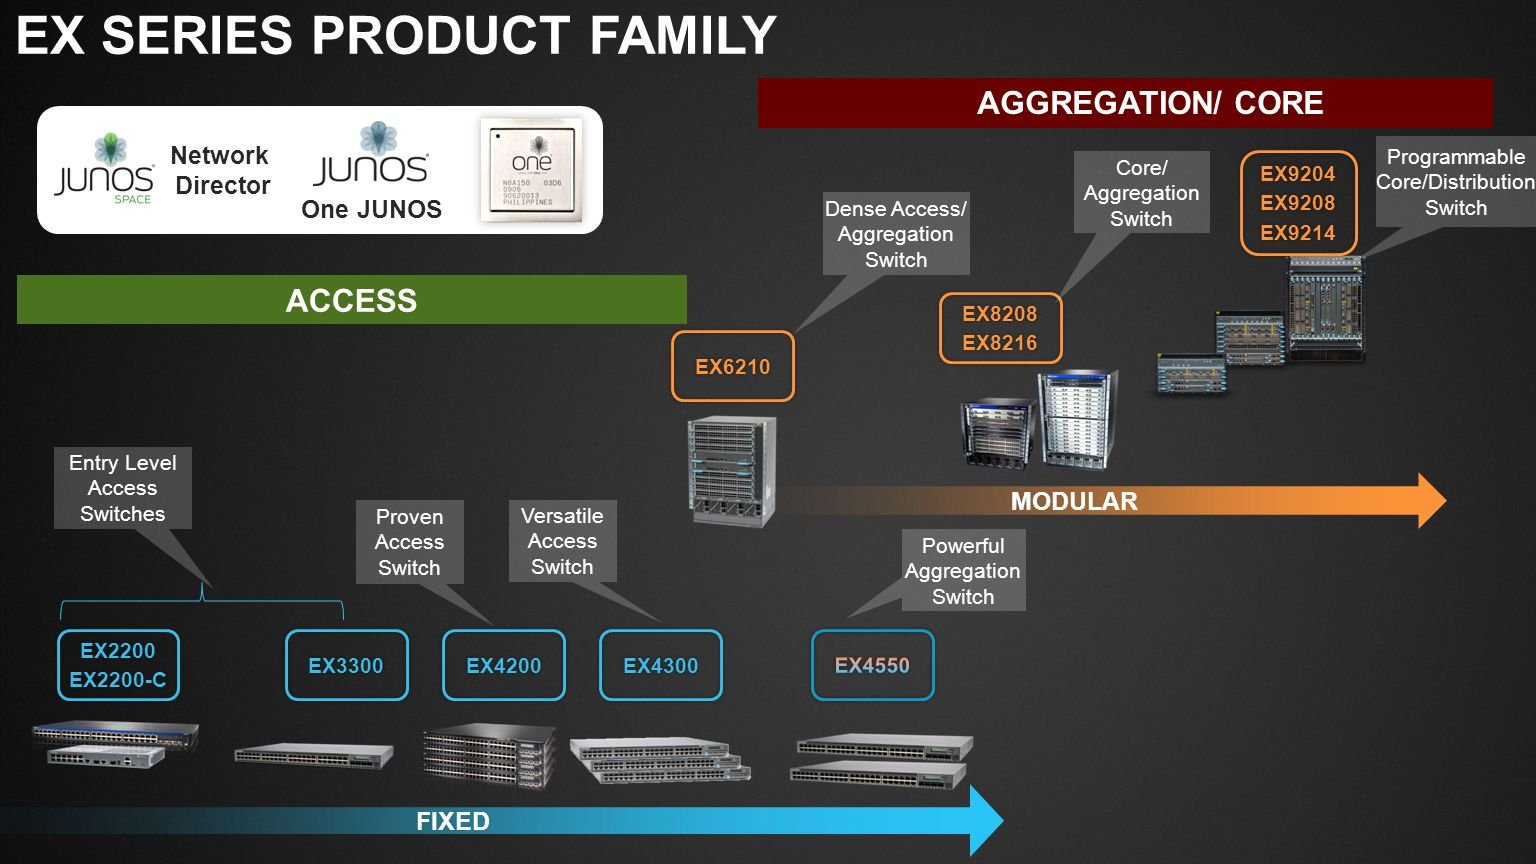 EX SERIES PRODUCT FAMILY